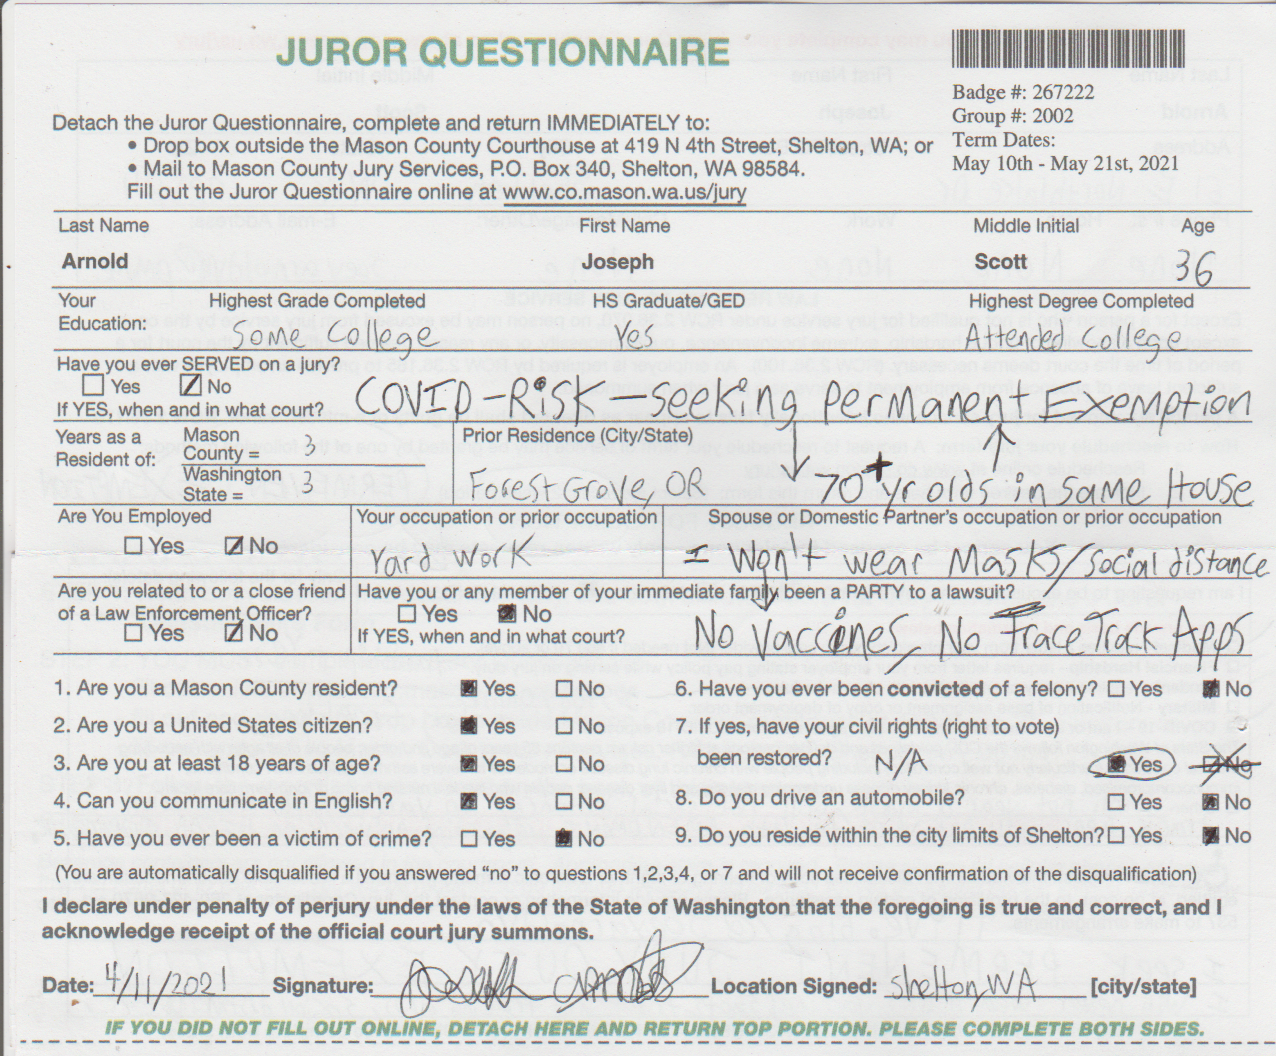 2021-04-11 - Sunday - 05:30 PM LMS - Jury Duty Permanent Exemption, 2nd time requested, 1st time in 2020, maybe not permanent exemption requested last time-1.png